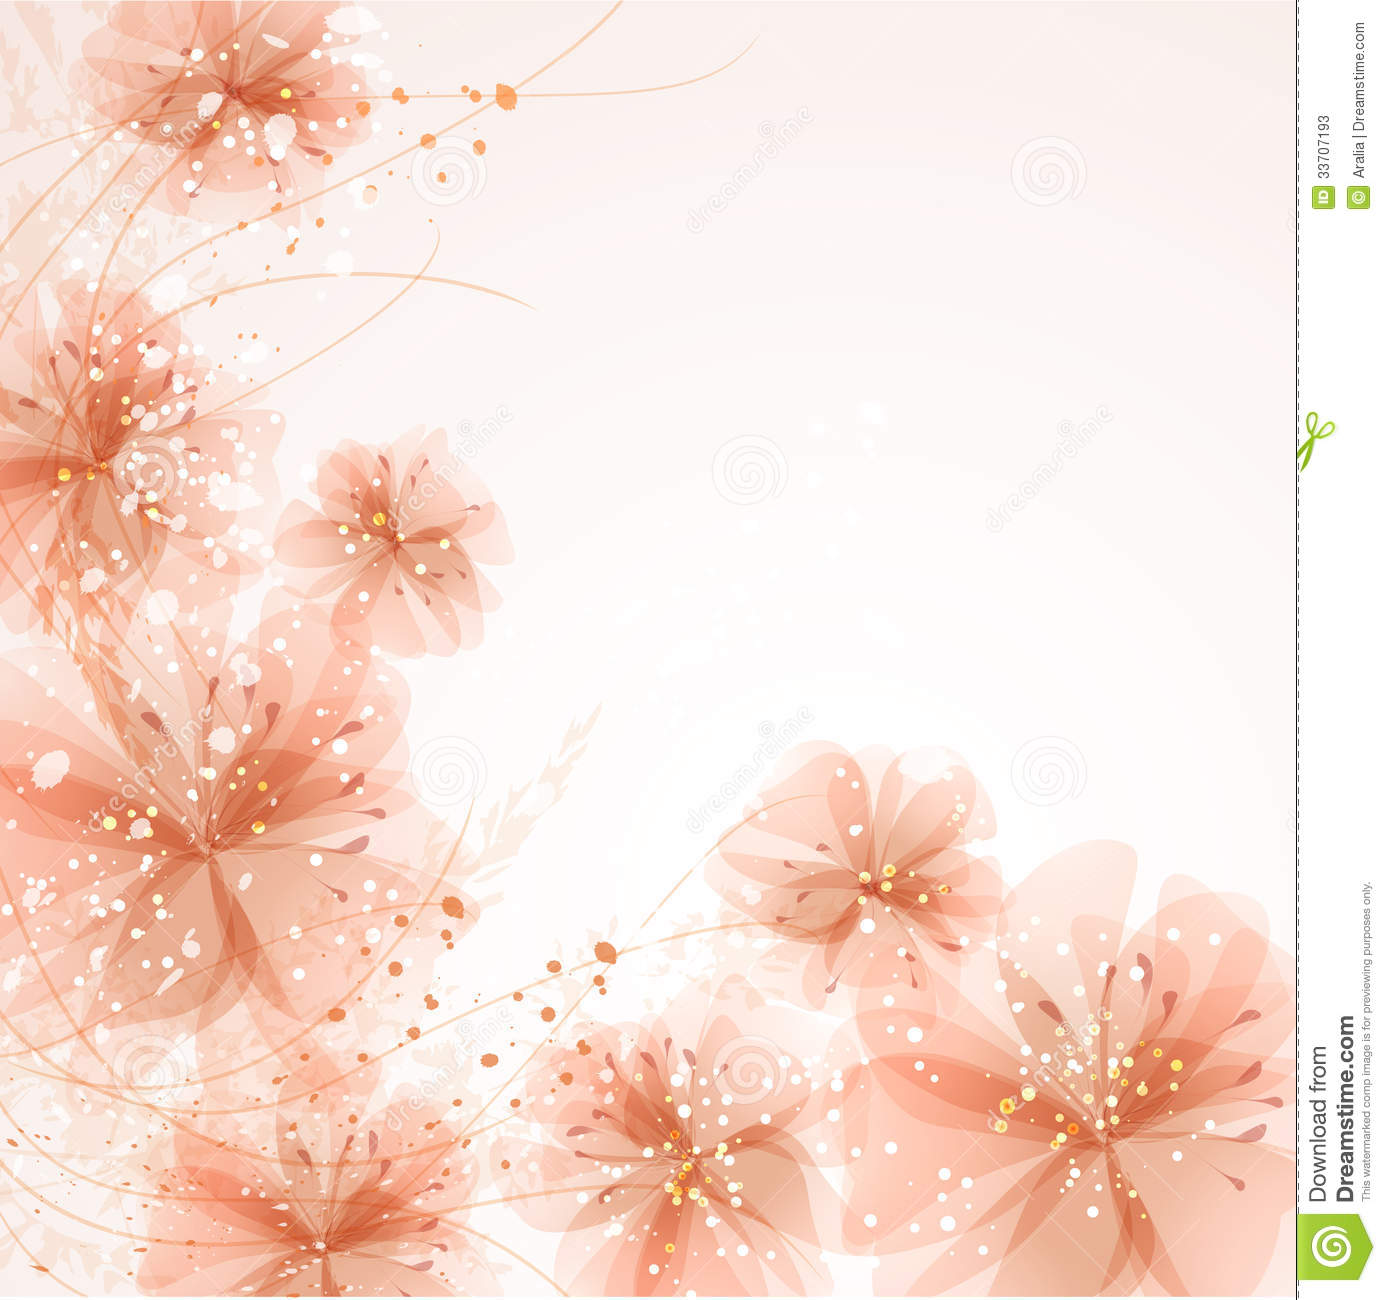 Background With Pastel Flowers Stock s Image